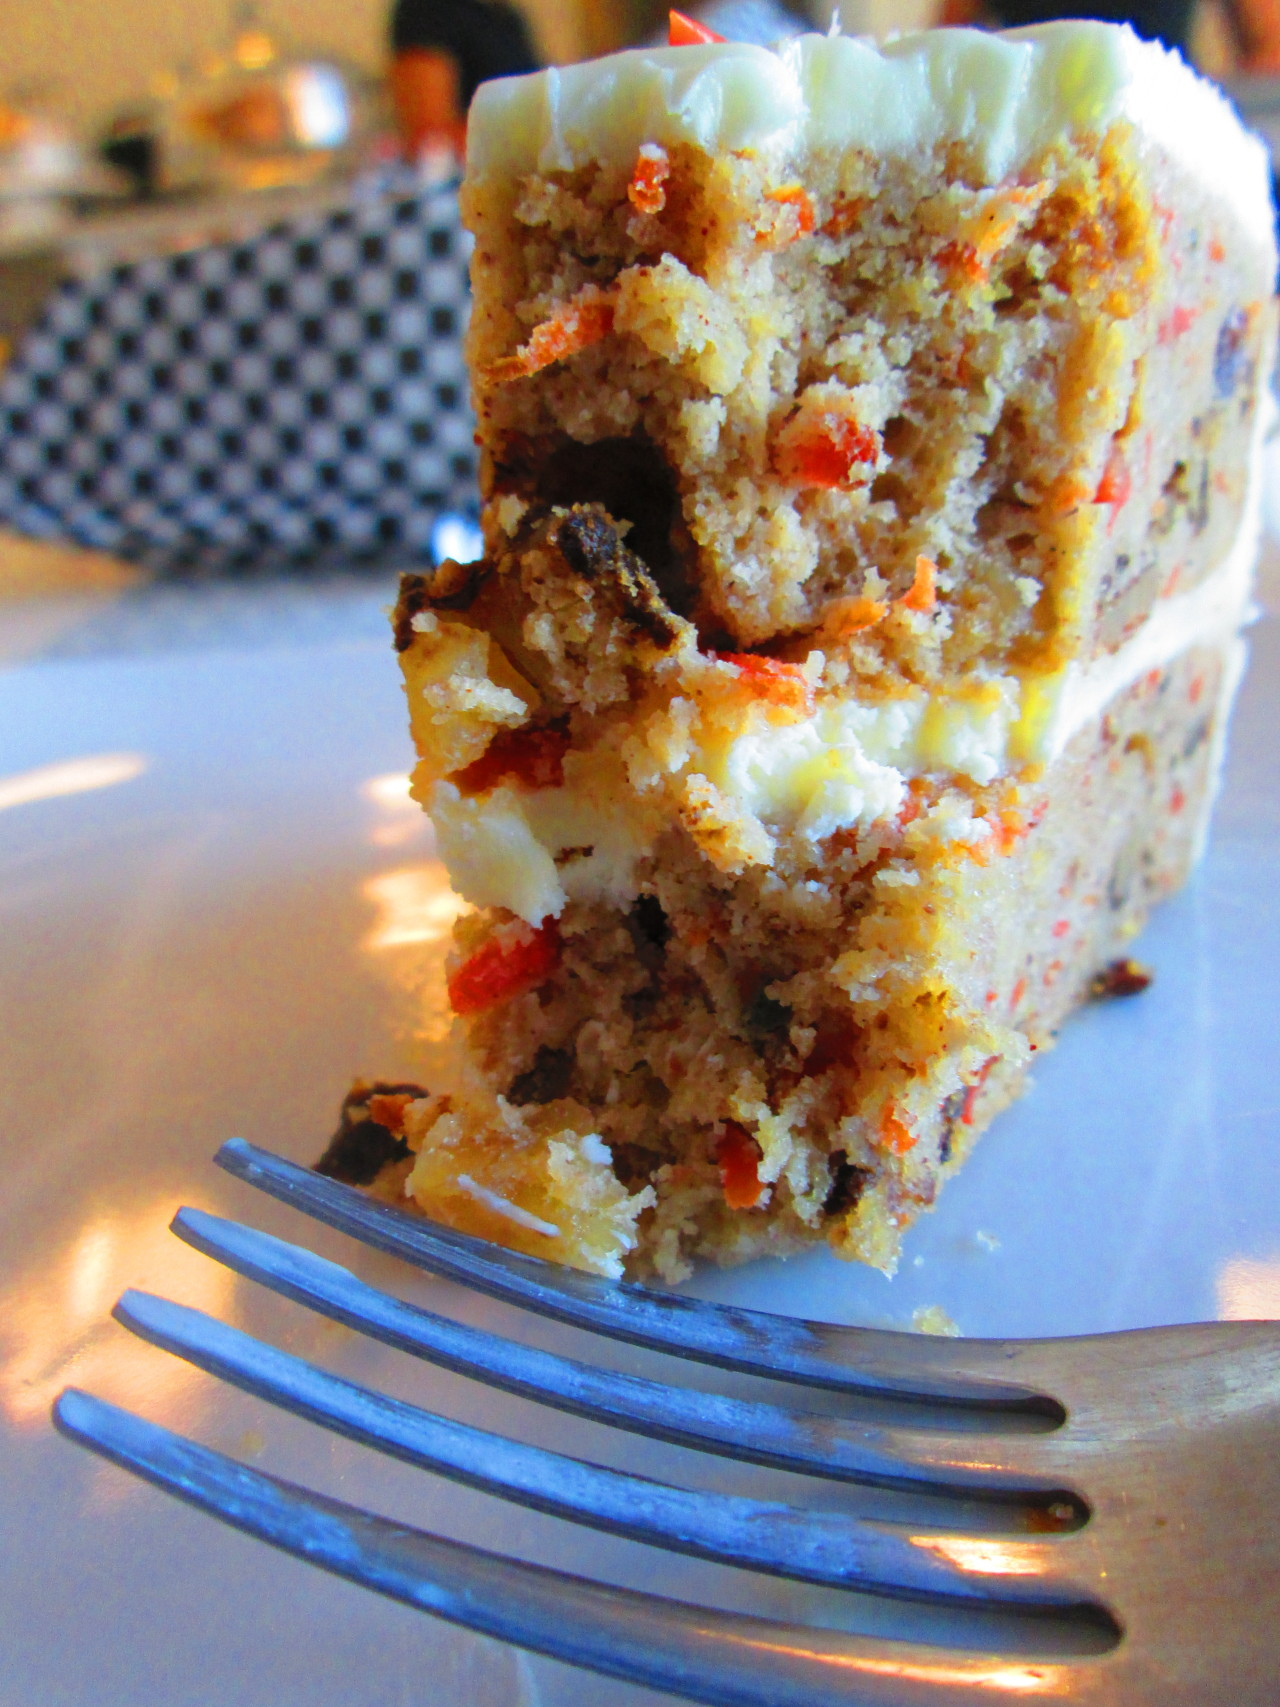 Ooh baby. Carrots are the worst but carrot cakes are my heart's one true love. Brioche makes them sooo good. :)